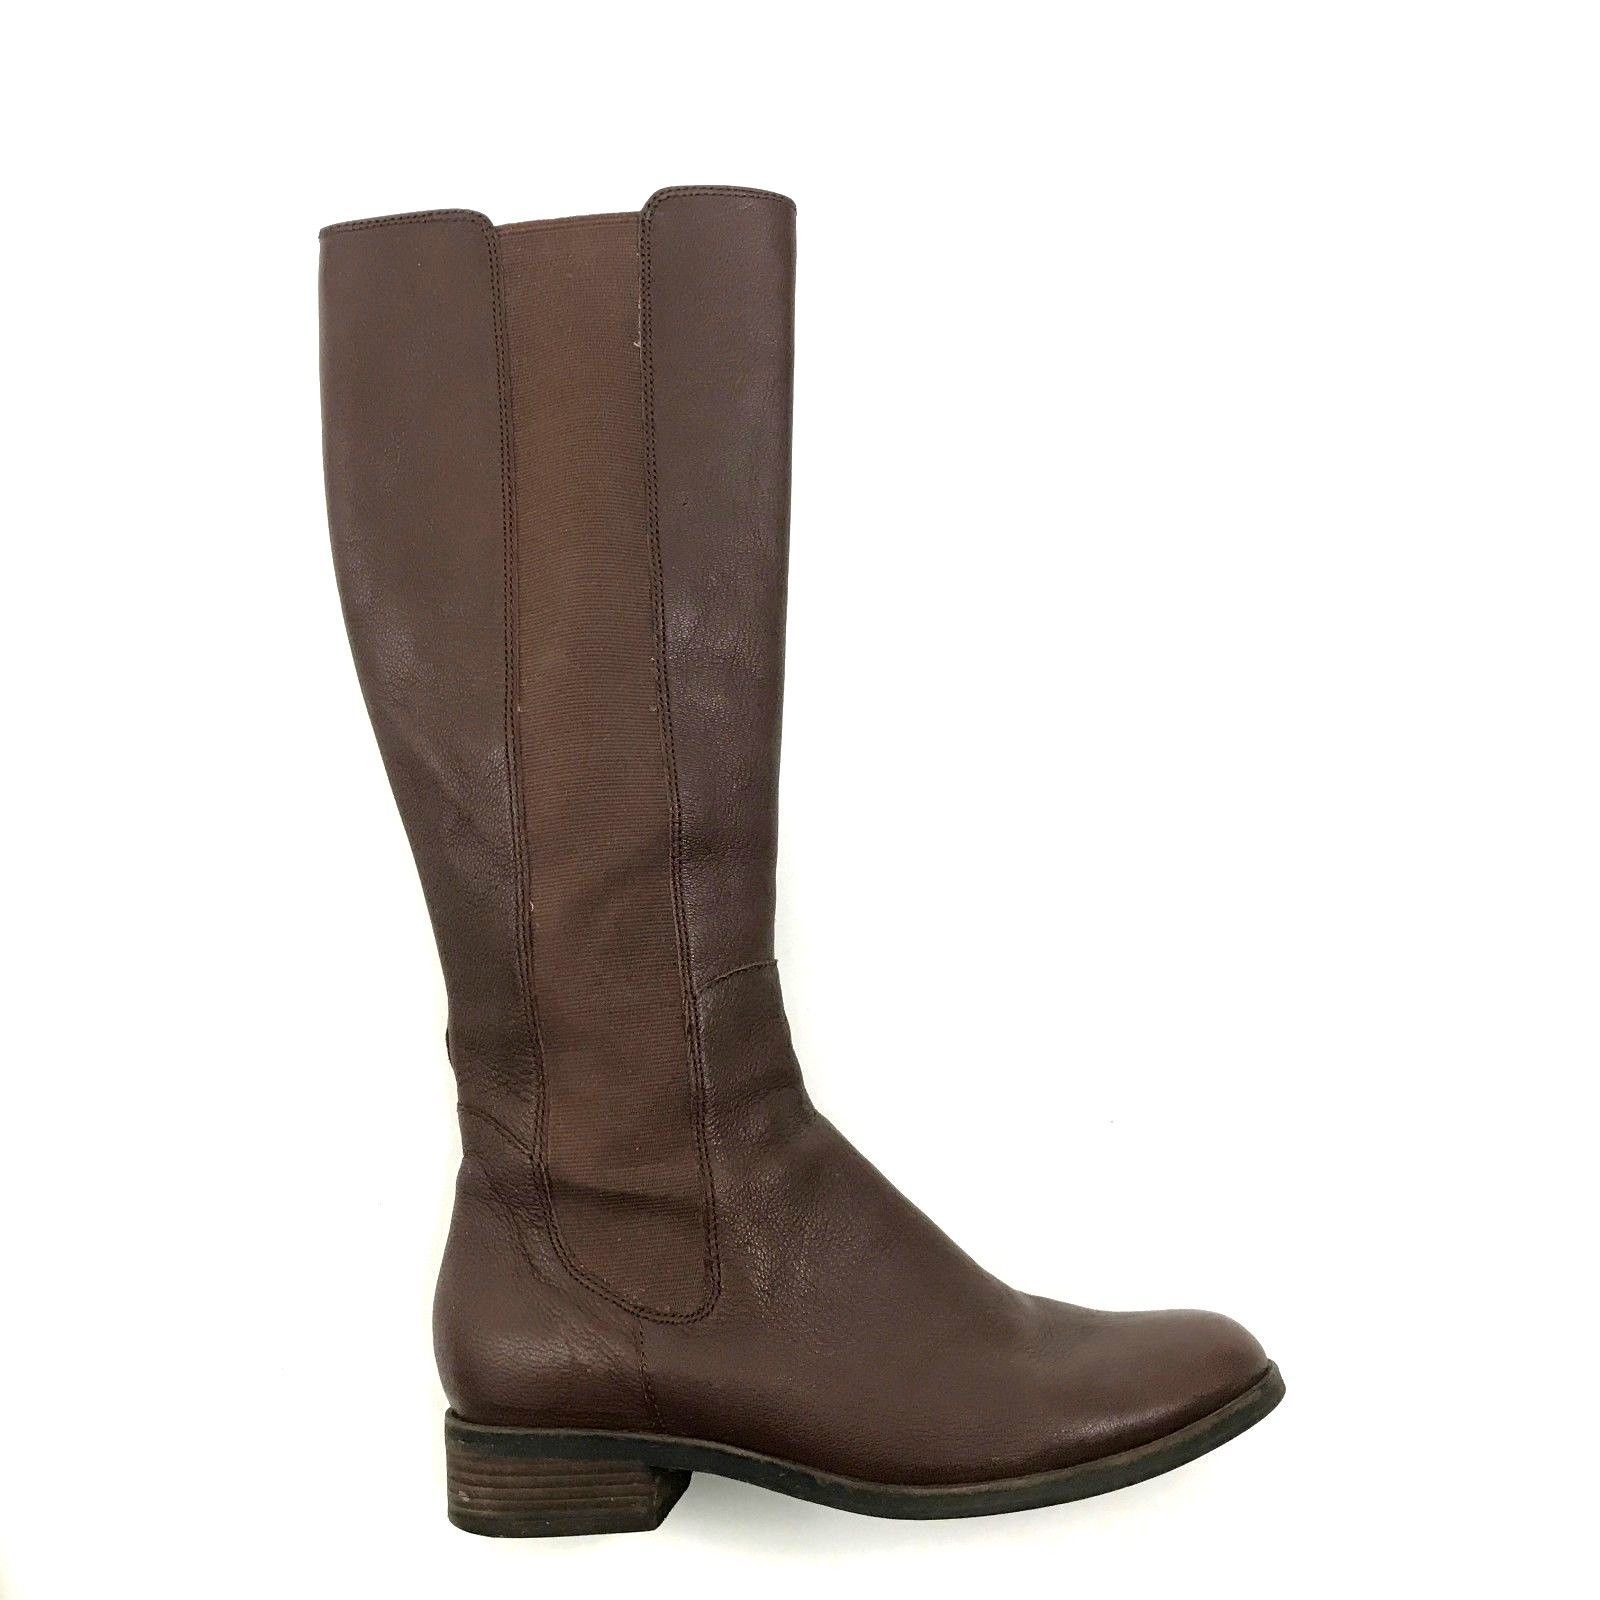 uk availability f3102 36c6c Cole HAAN Kniehohe Stiefel Damen 9.5 Braun and 28 similar items